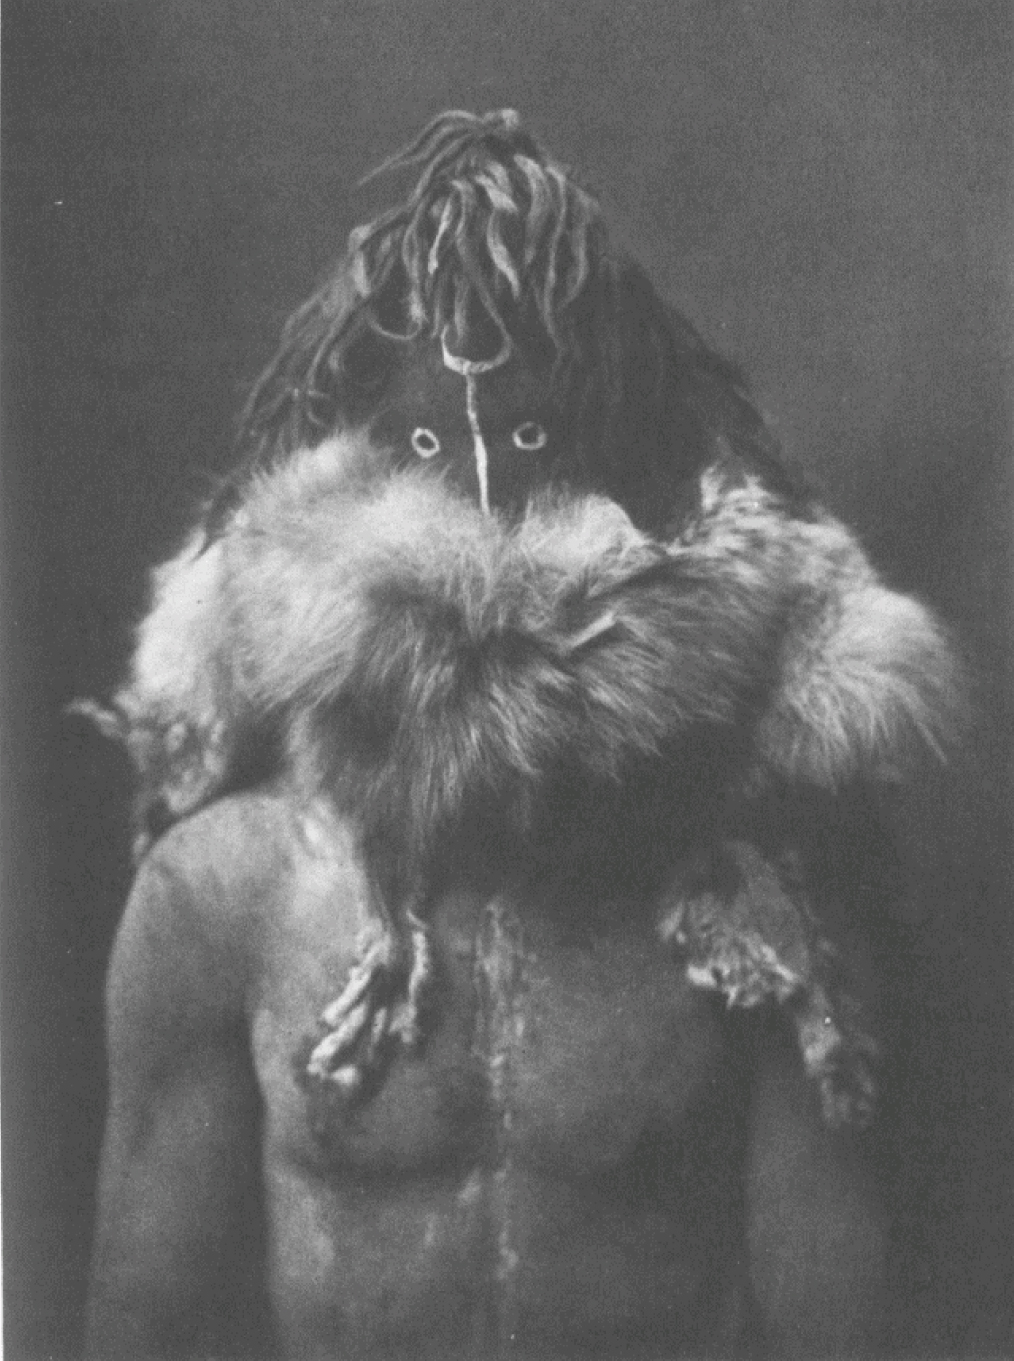 6. Haschézhini - Navaho From Copyright Photograph 1904 by E.S. Curtis Black God, the God of Fire. An important deity of the Navaho, but appearing infrequently in their mythology and ceremonies.